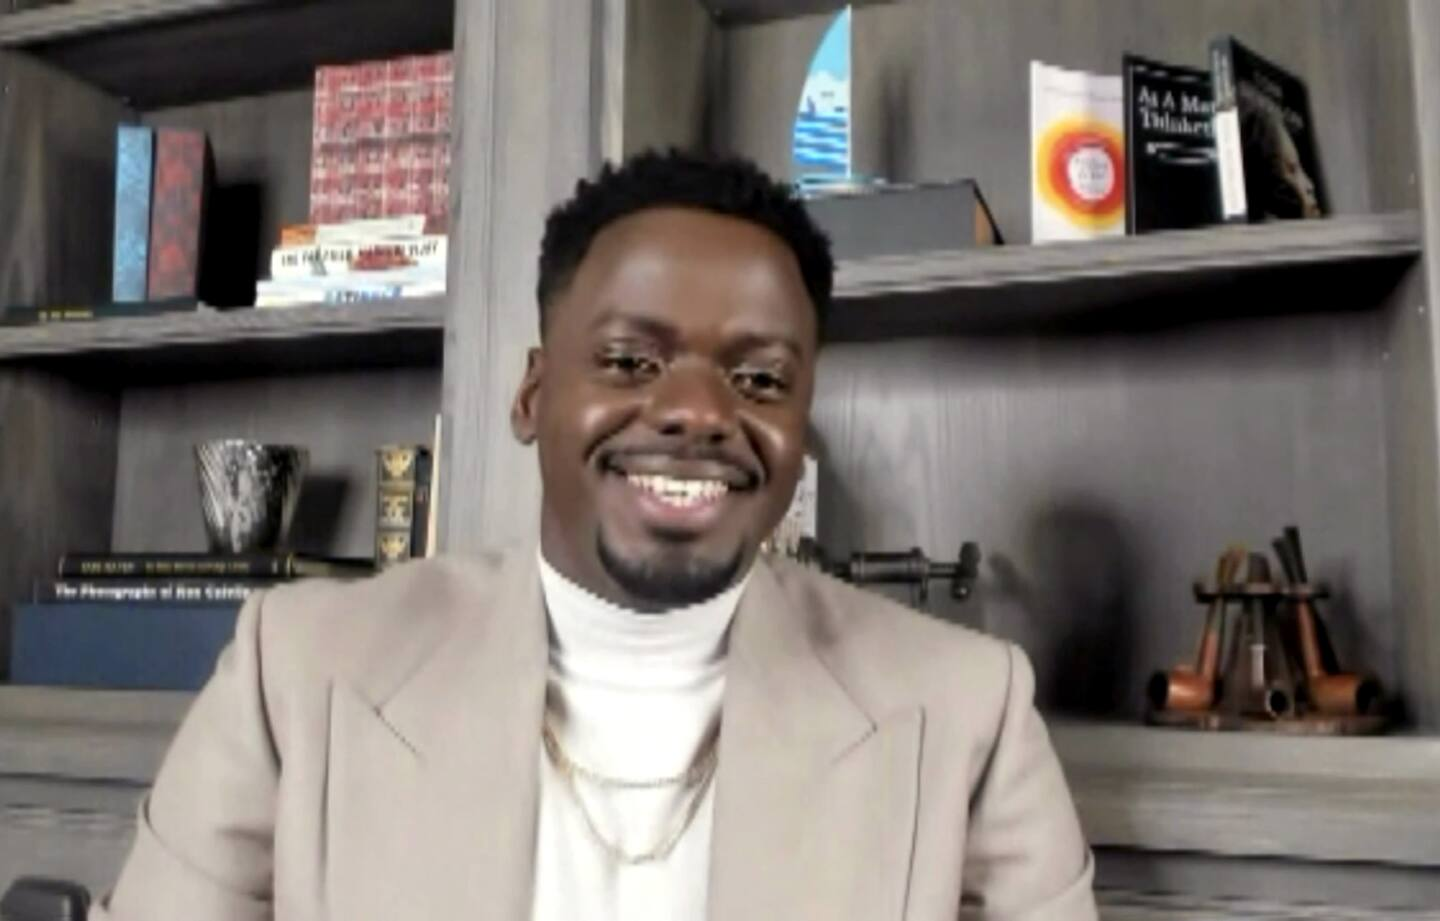 What to watch this weekend: Daniel Kaluuya hosts 'Saturday Night Live'